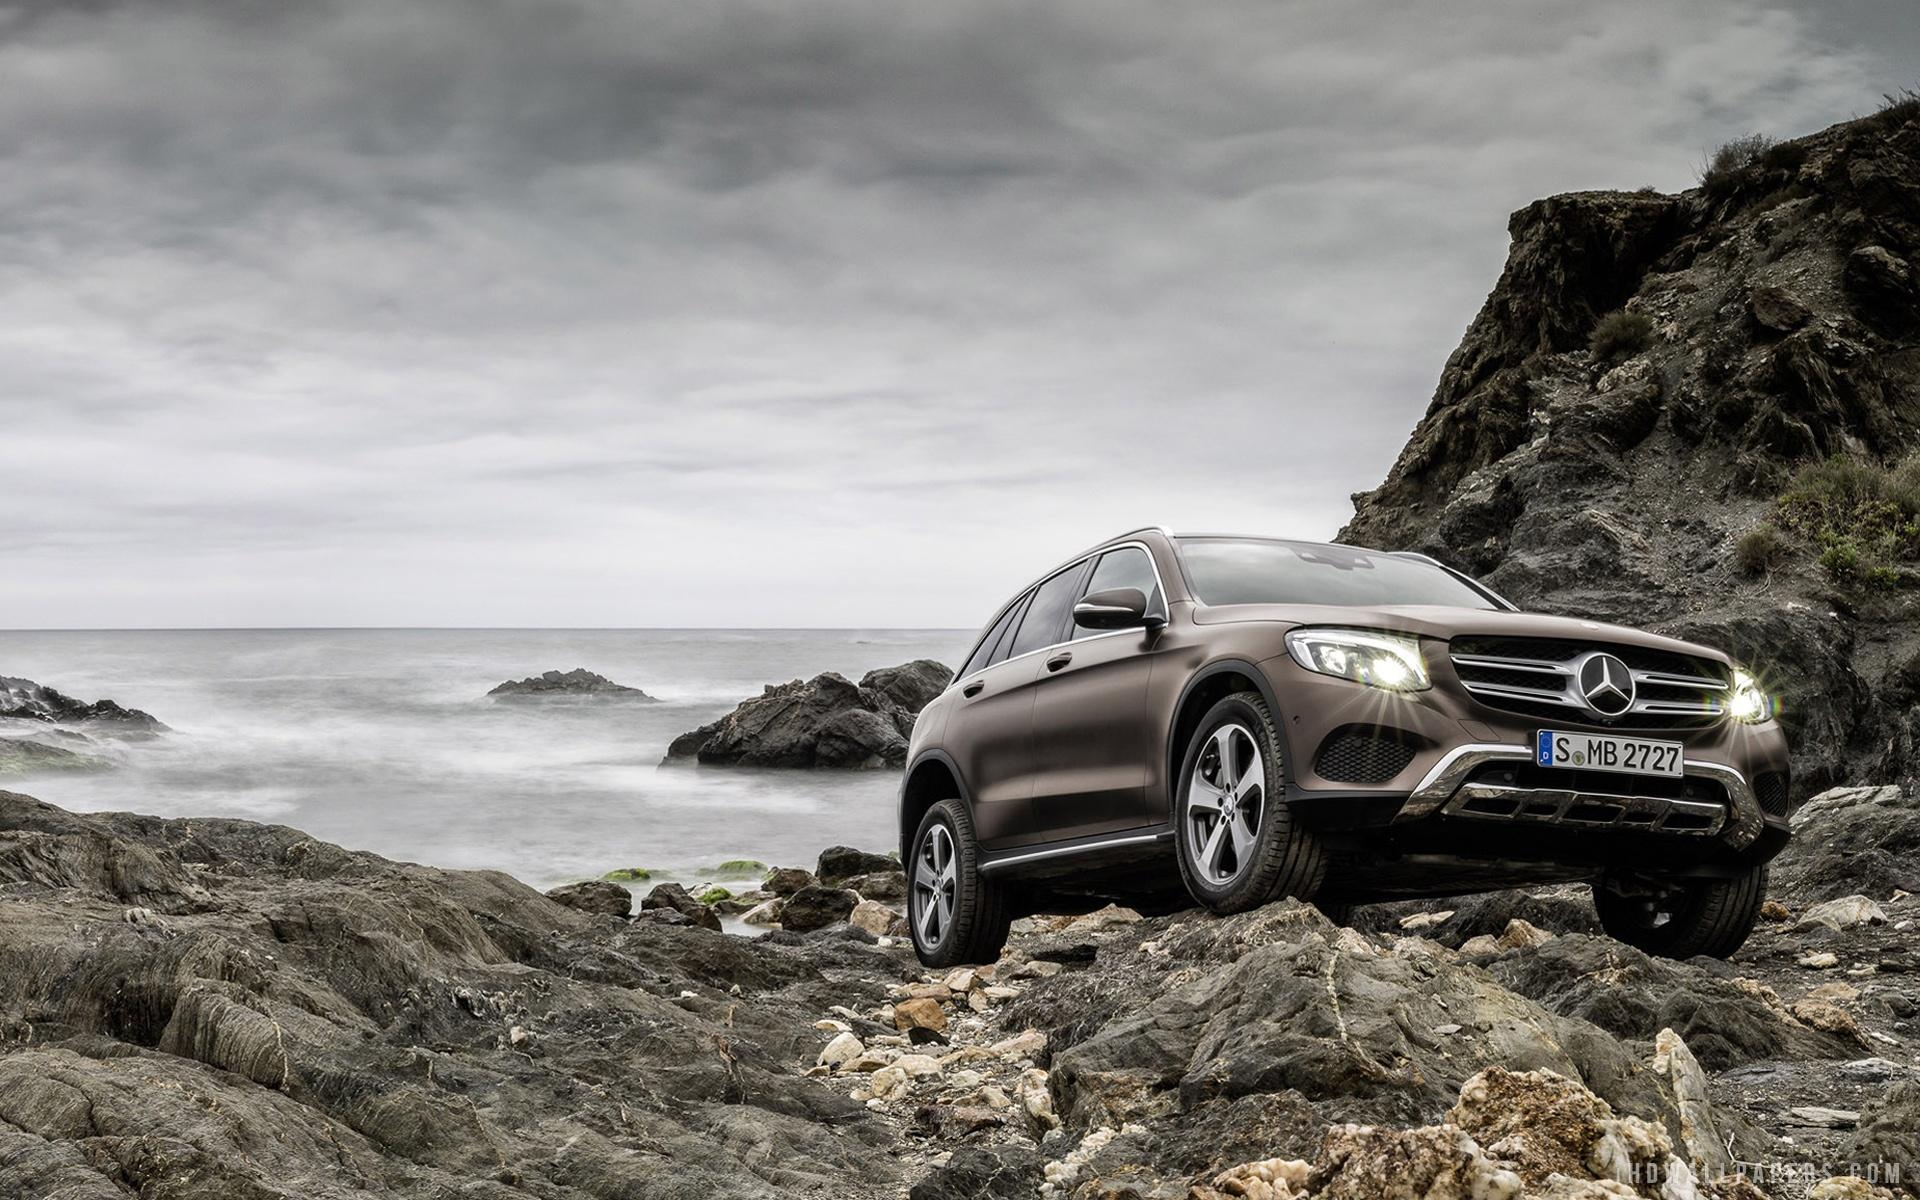 Mercedes Benz GLC wallpapers